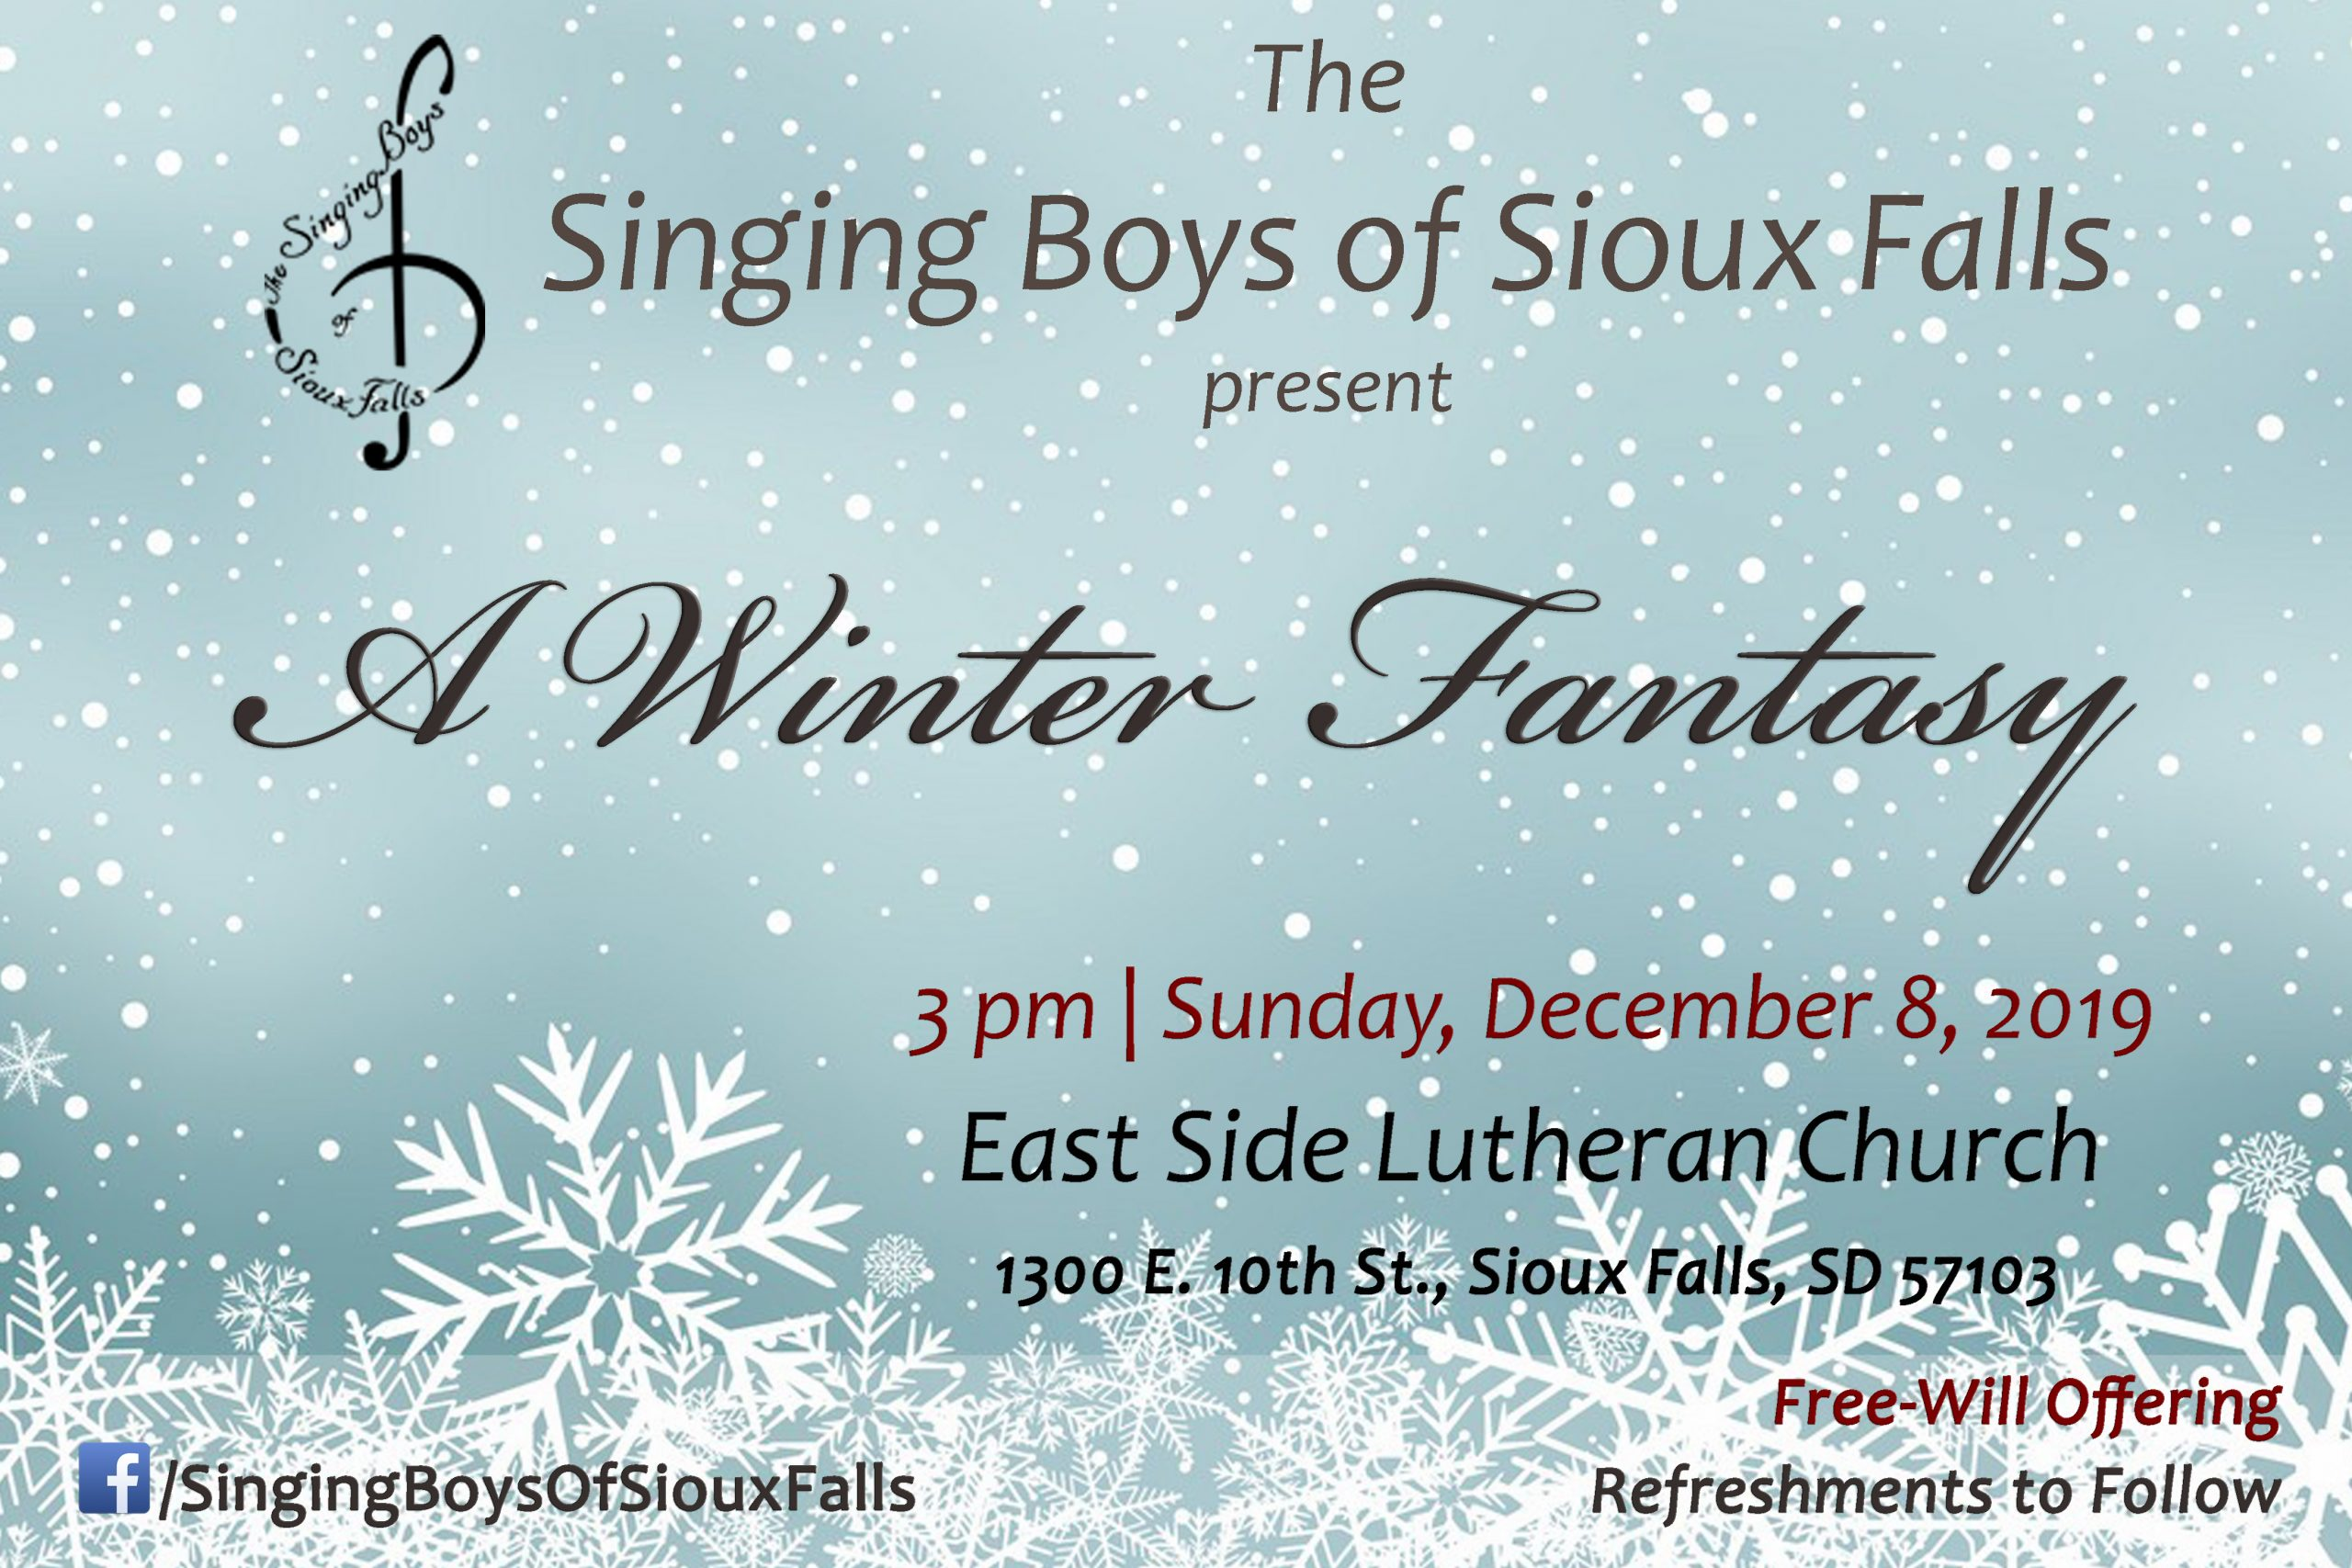 Christmas Concerts 2020 Sioux Falls Sd Singing Boys of SF Christmas Concert – Sioux Falls Arts Council